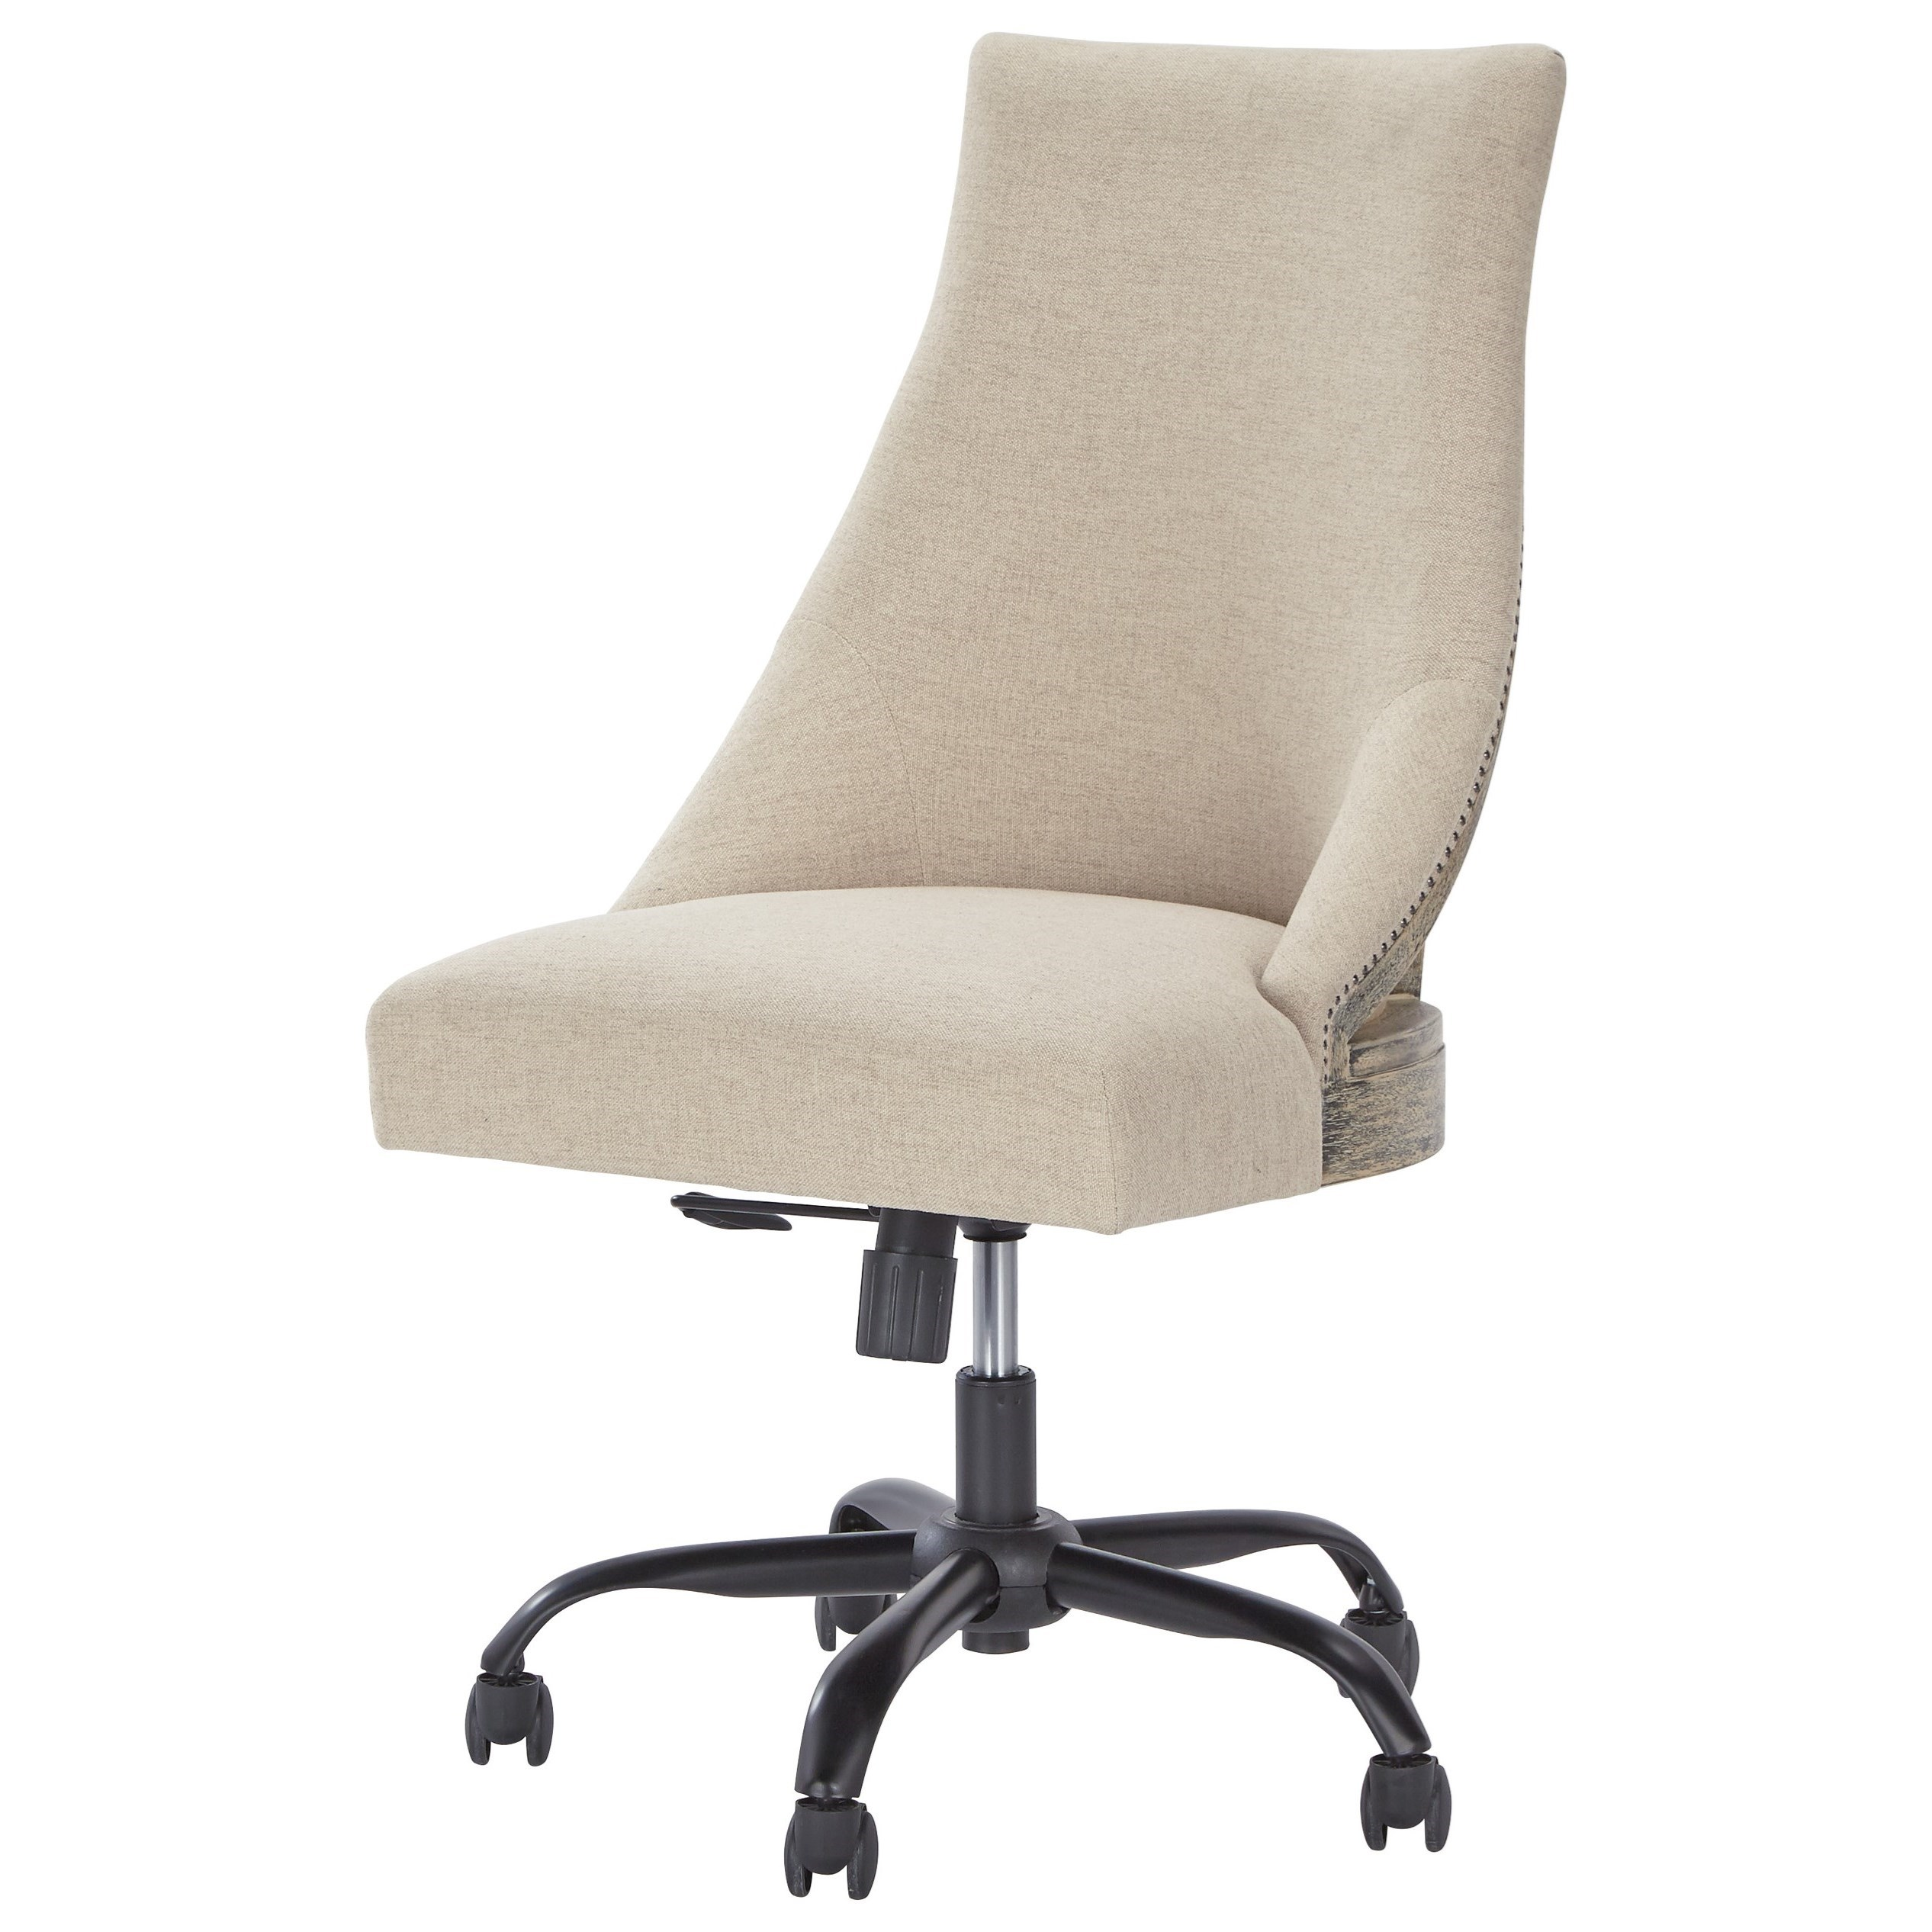 Swivel Desk Chairs Home Office Swivel Desk Chair In Deconstructed Style By